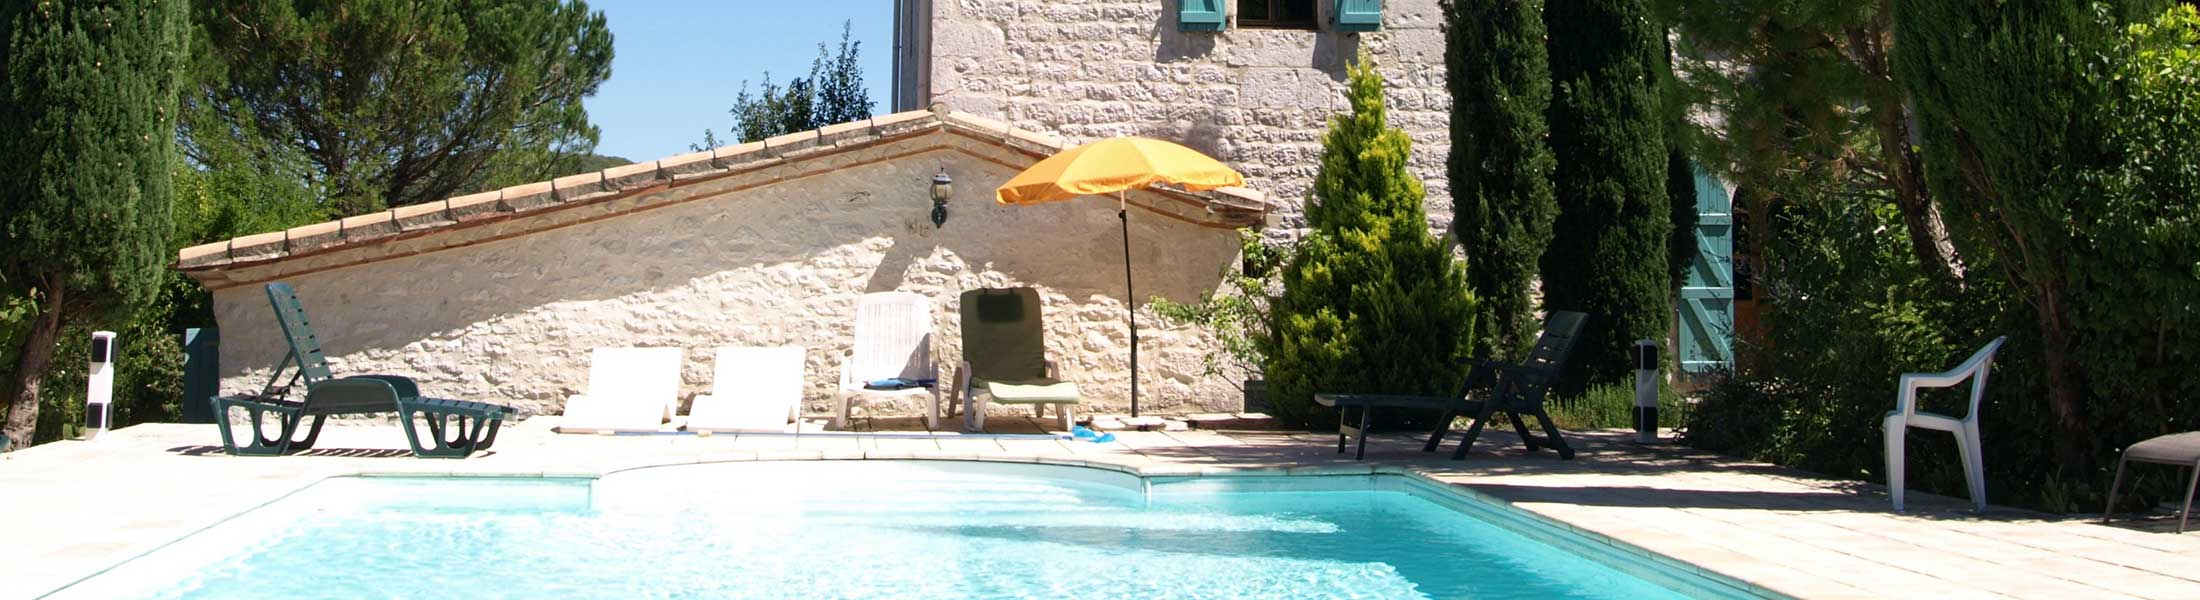 French villa pool, Cahors, Francefrench-villa-pool-cahors-france